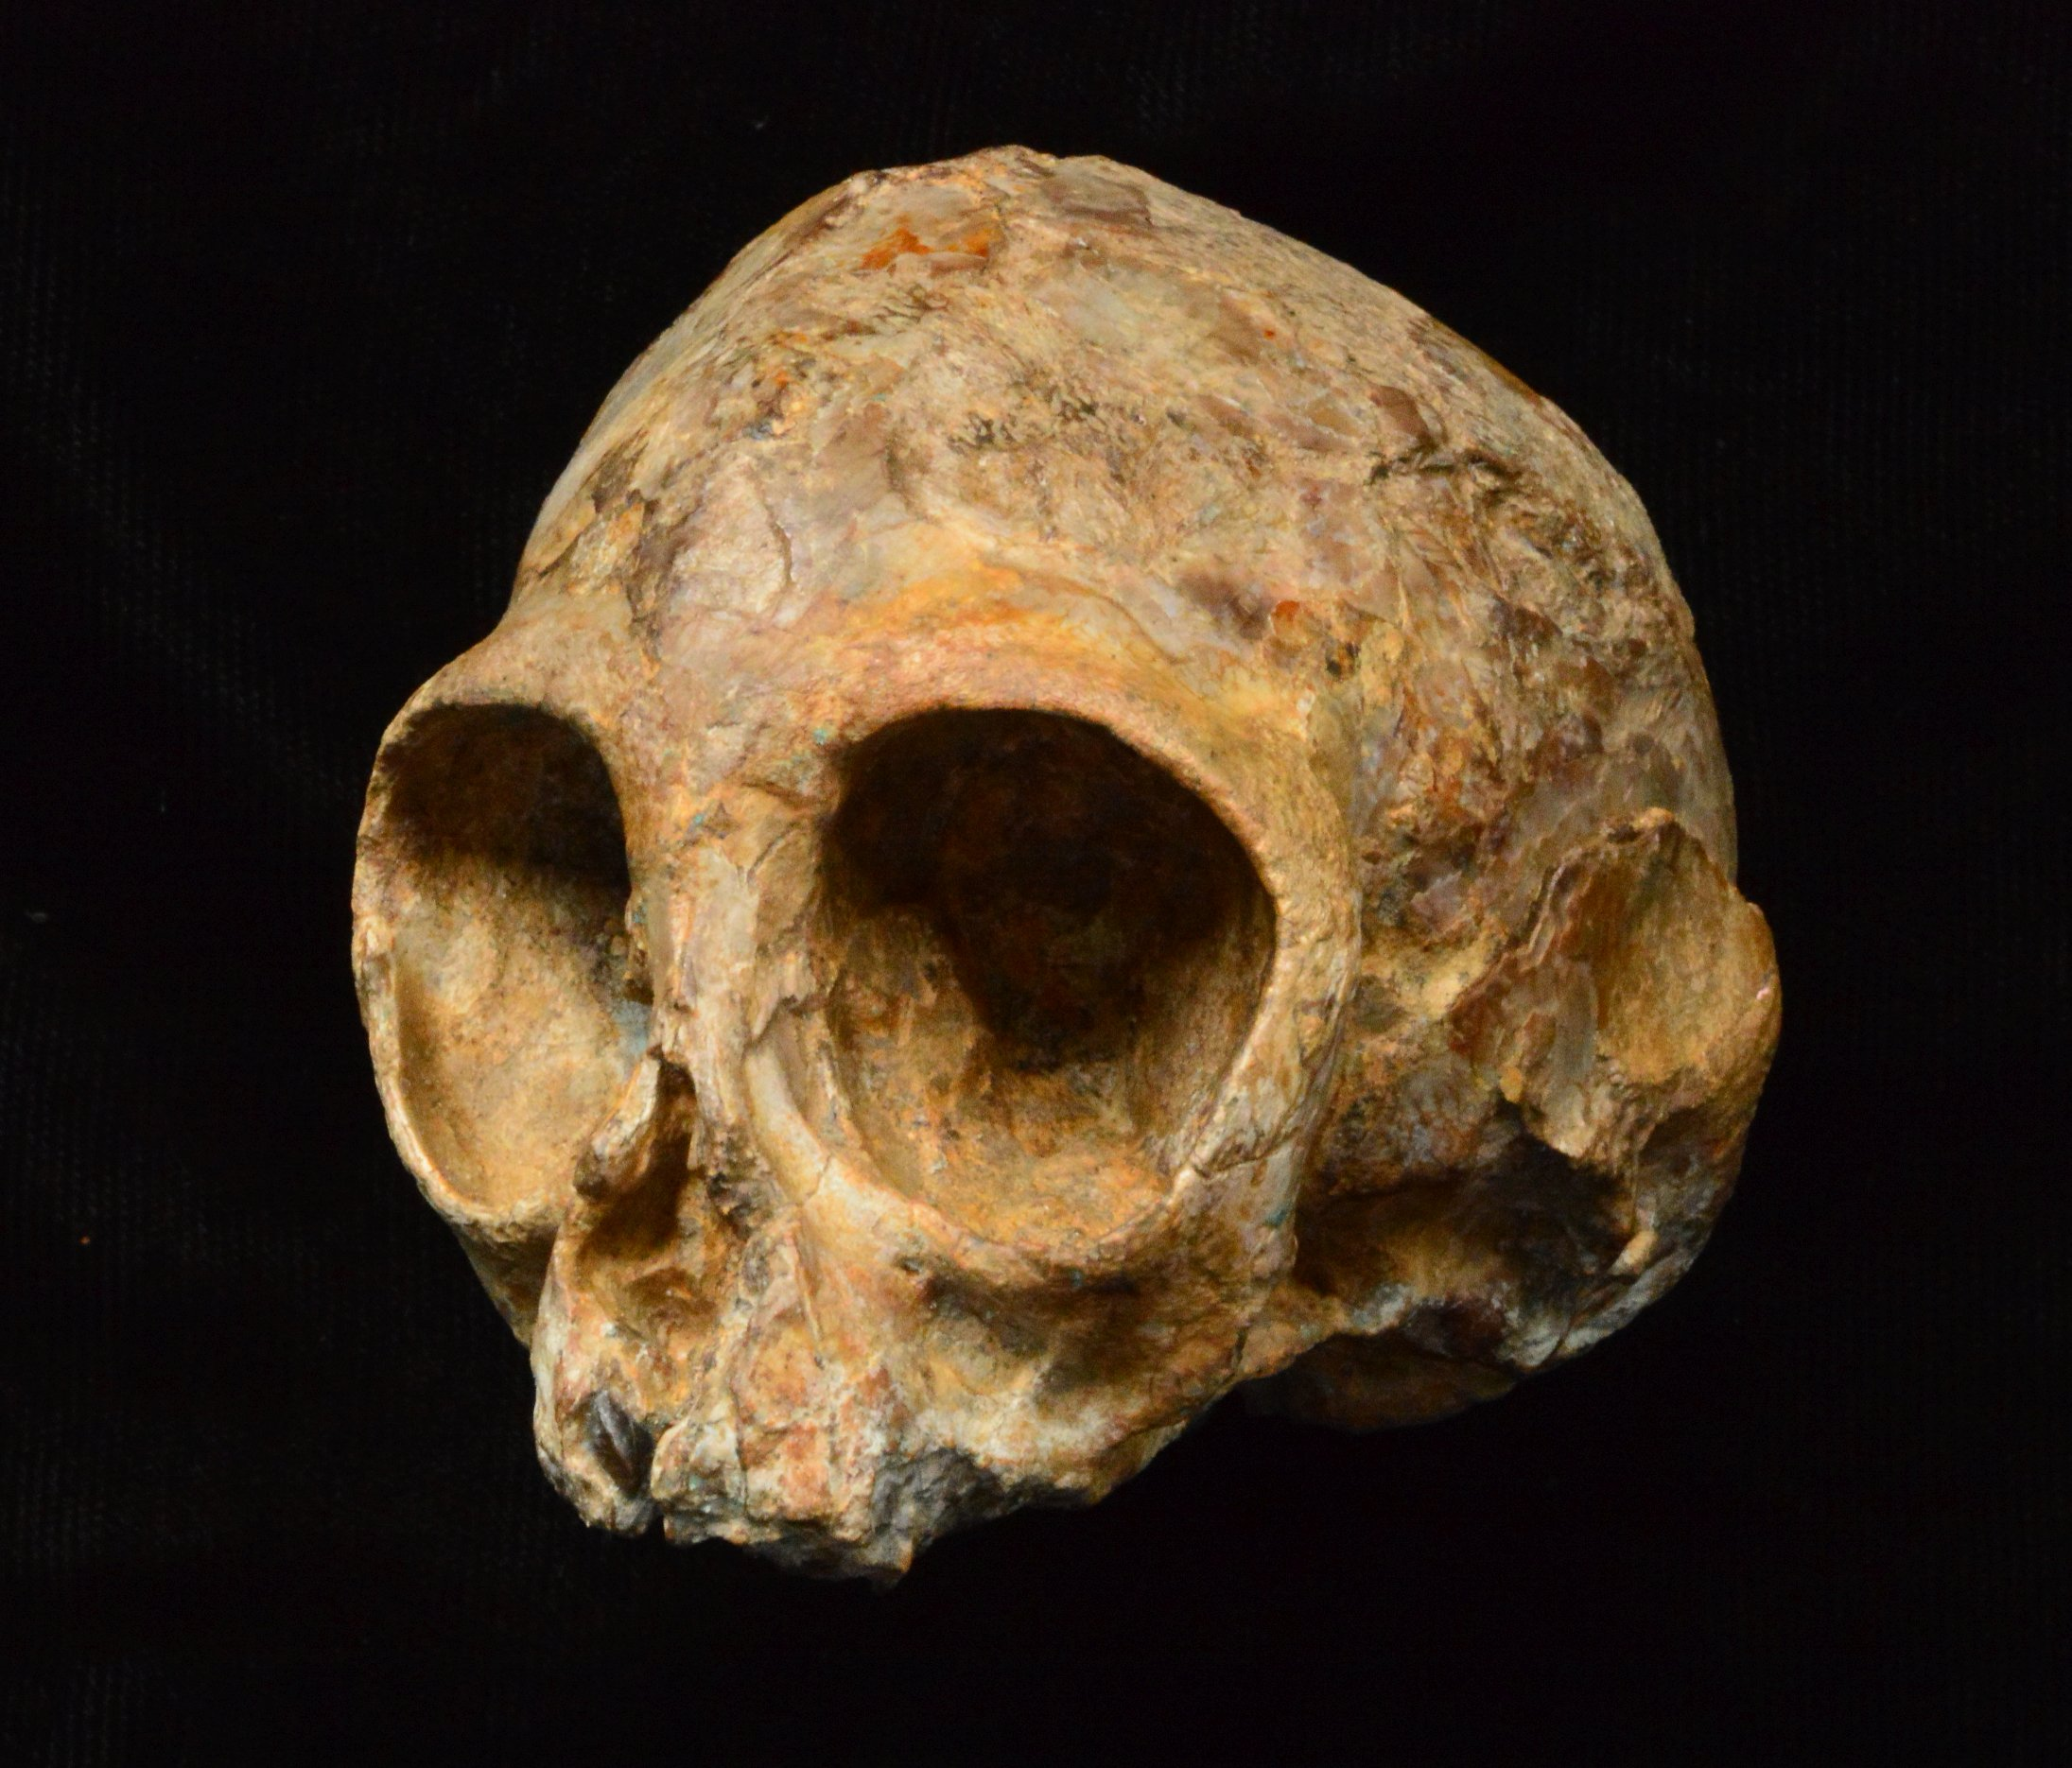 Ancient Ape Skull Sheds Light On Common Ancestors Of Humans And Apes